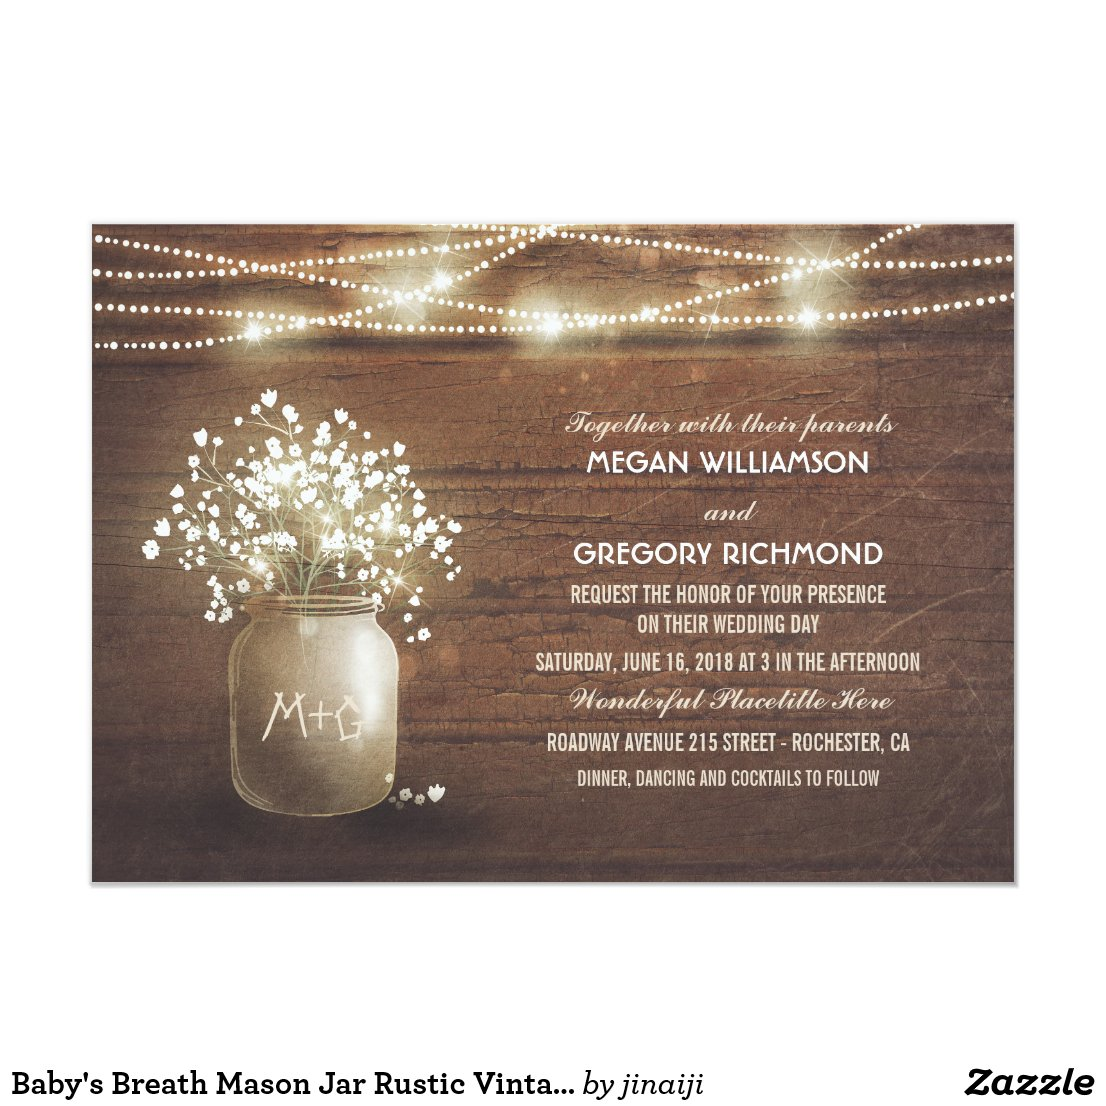 Baby's Breath Mason Jar Rustic Vintage Wedding Card